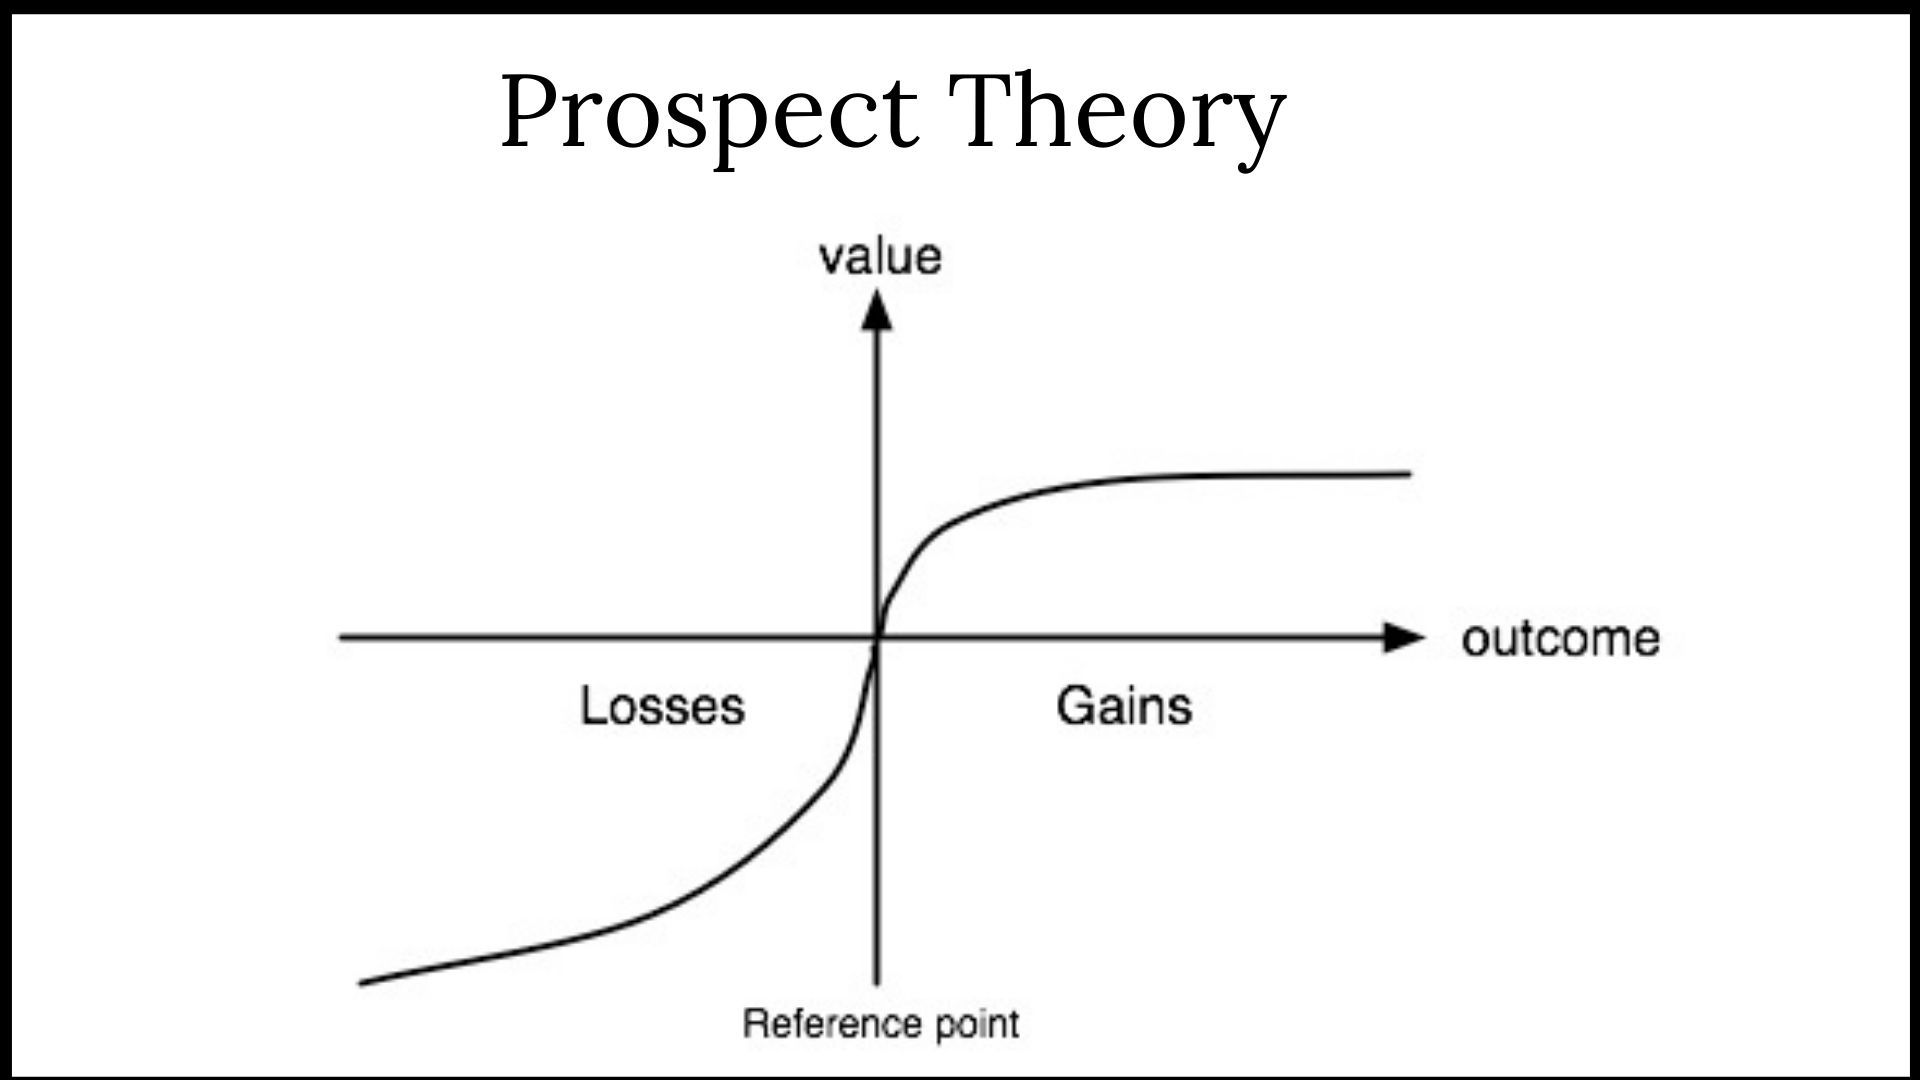 Biases Explained in the Prospective Theory